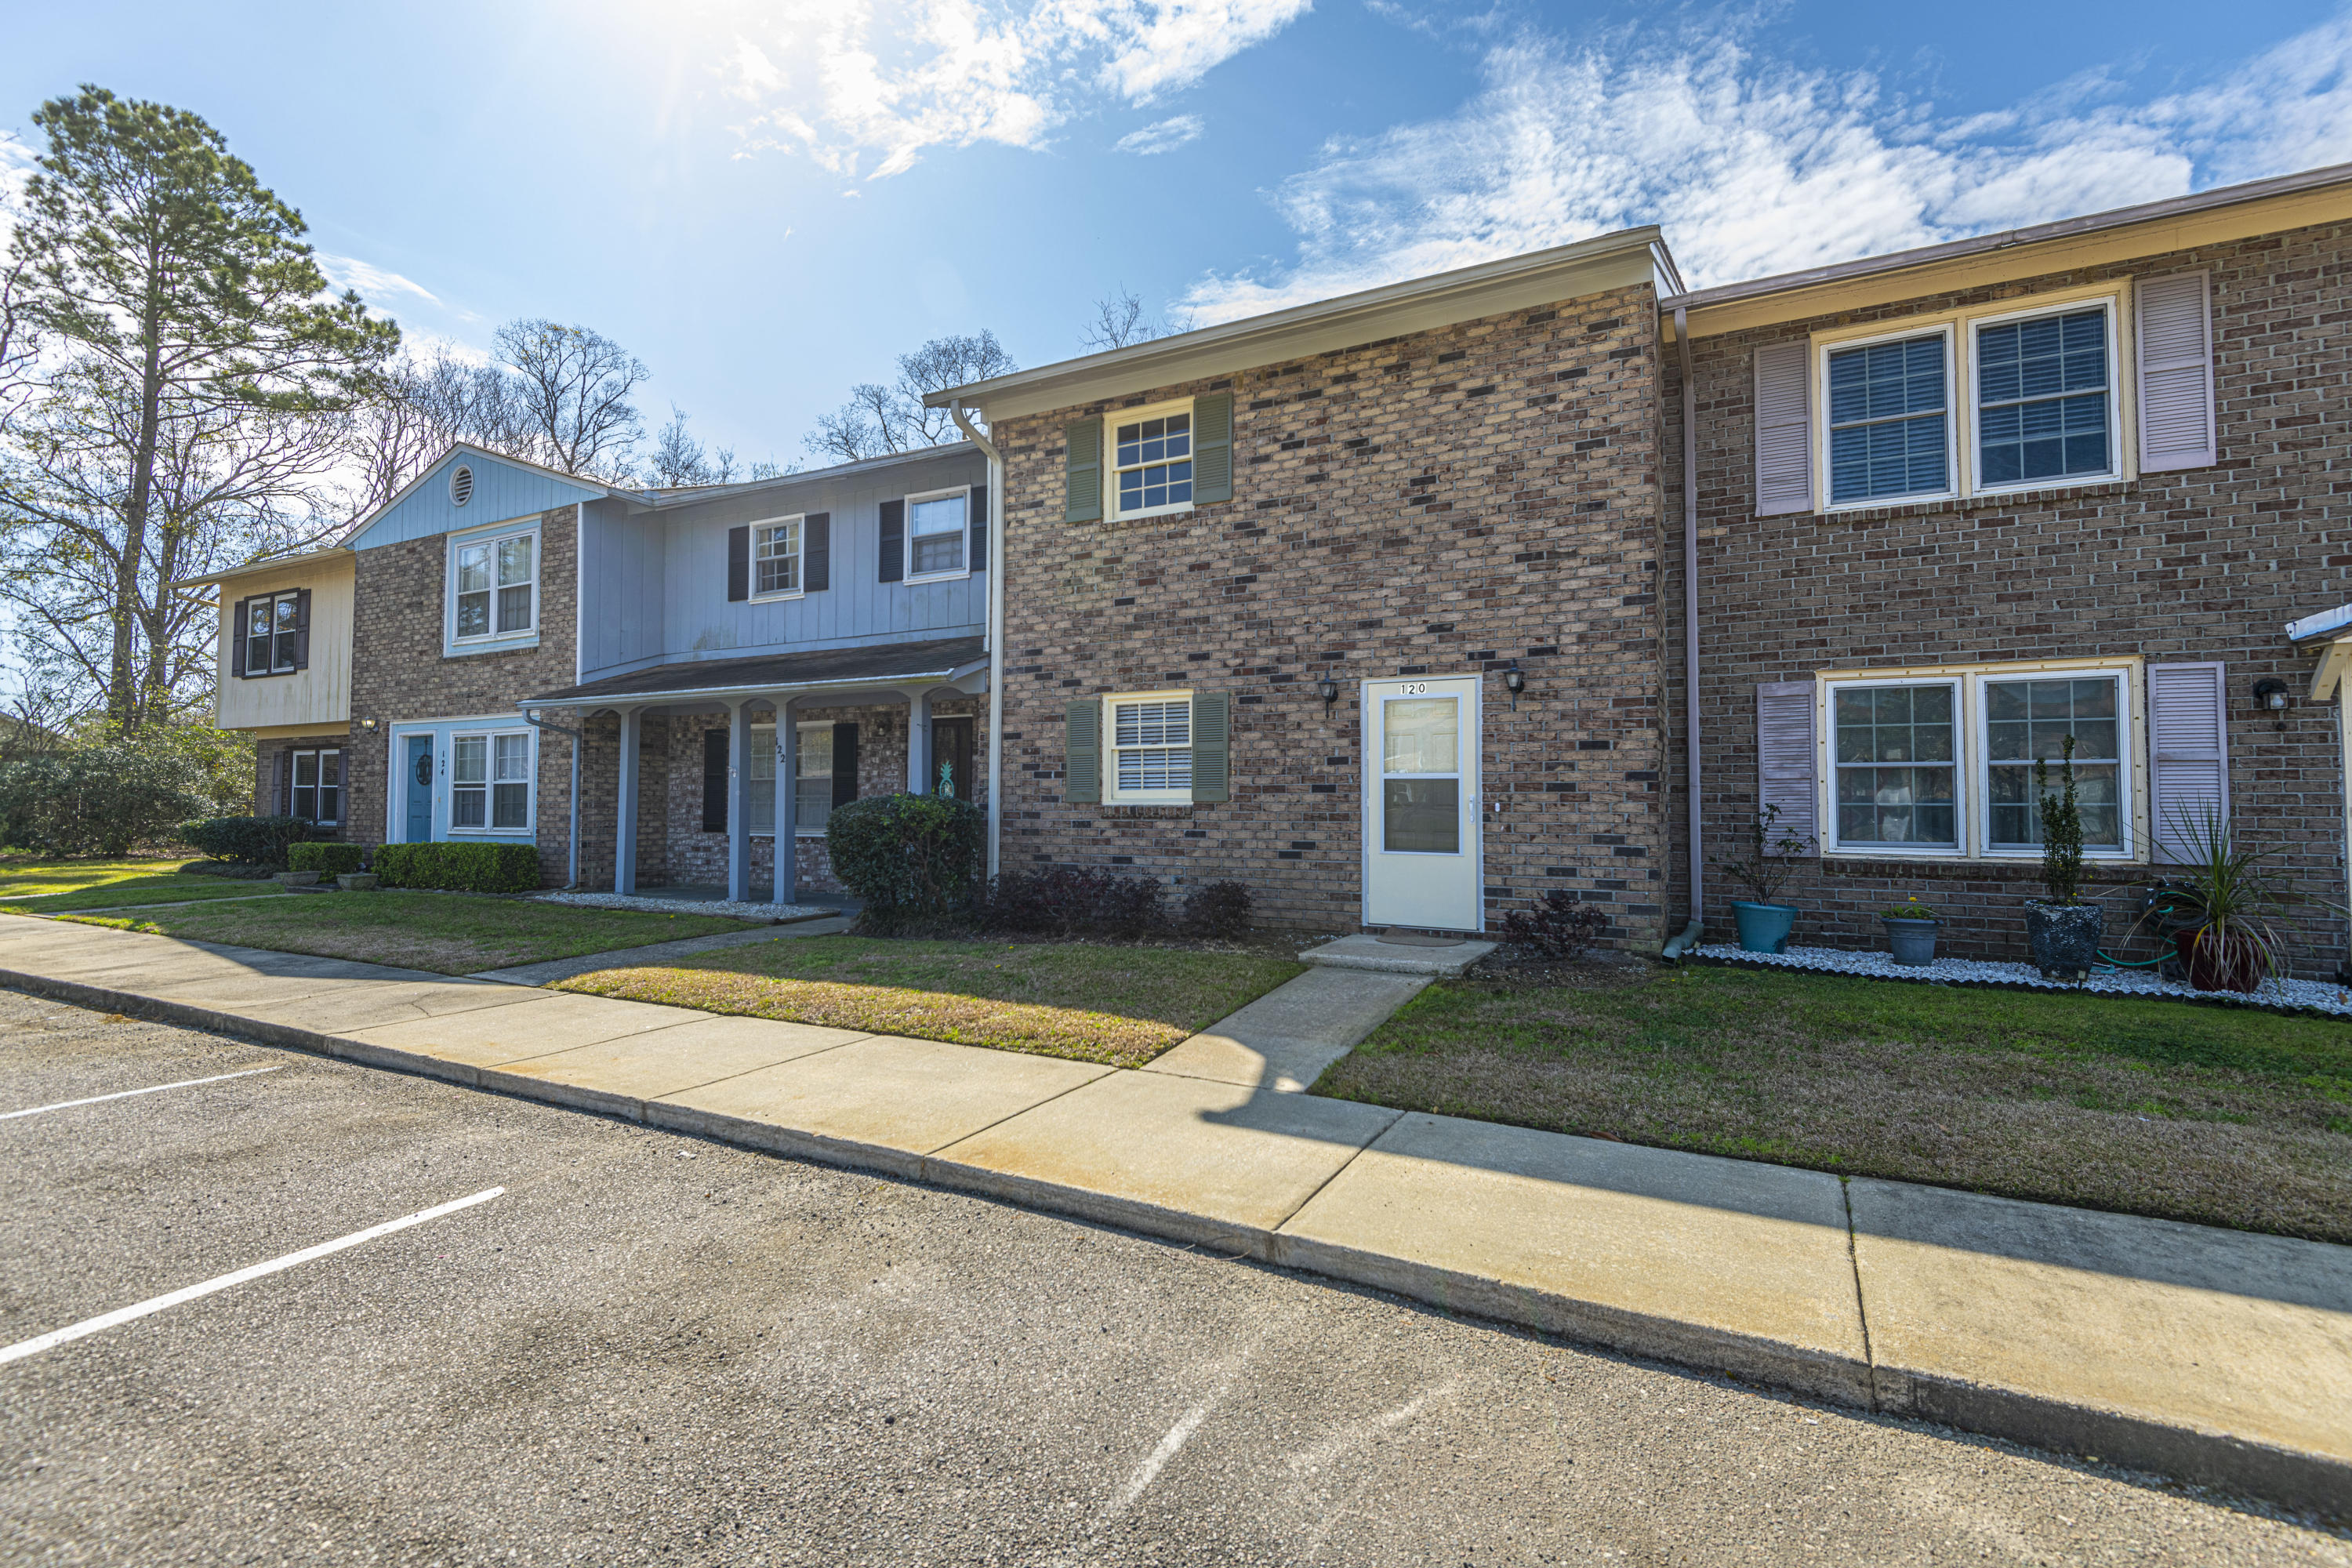 Foxborough Town Houses Homes For Sale - 120 Brush, Goose Creek, SC - 28